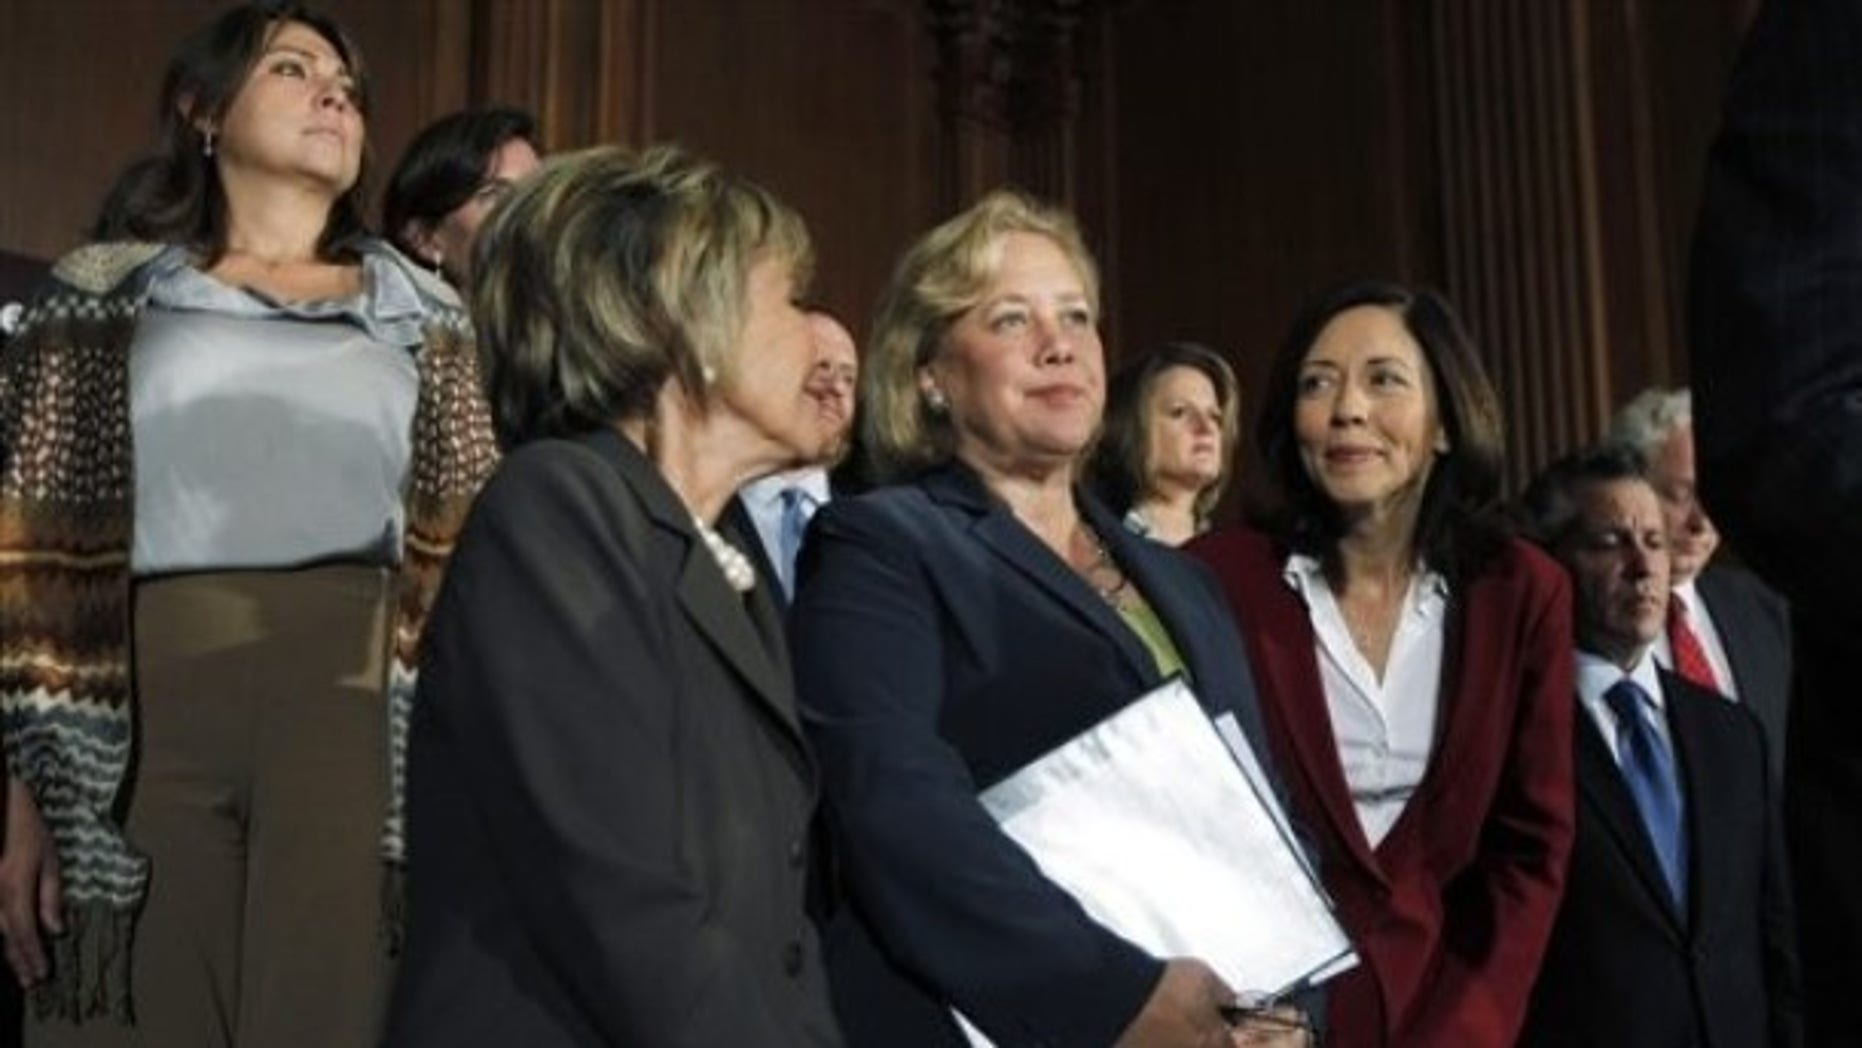 Sen. Mary Landrieu, D-La., accompanied by Sen. Barbara Boxer, D-Calif., and Sen. Maria Cantwell, D-Wash., at a news conference in Washington, Sept. 14, 2010.